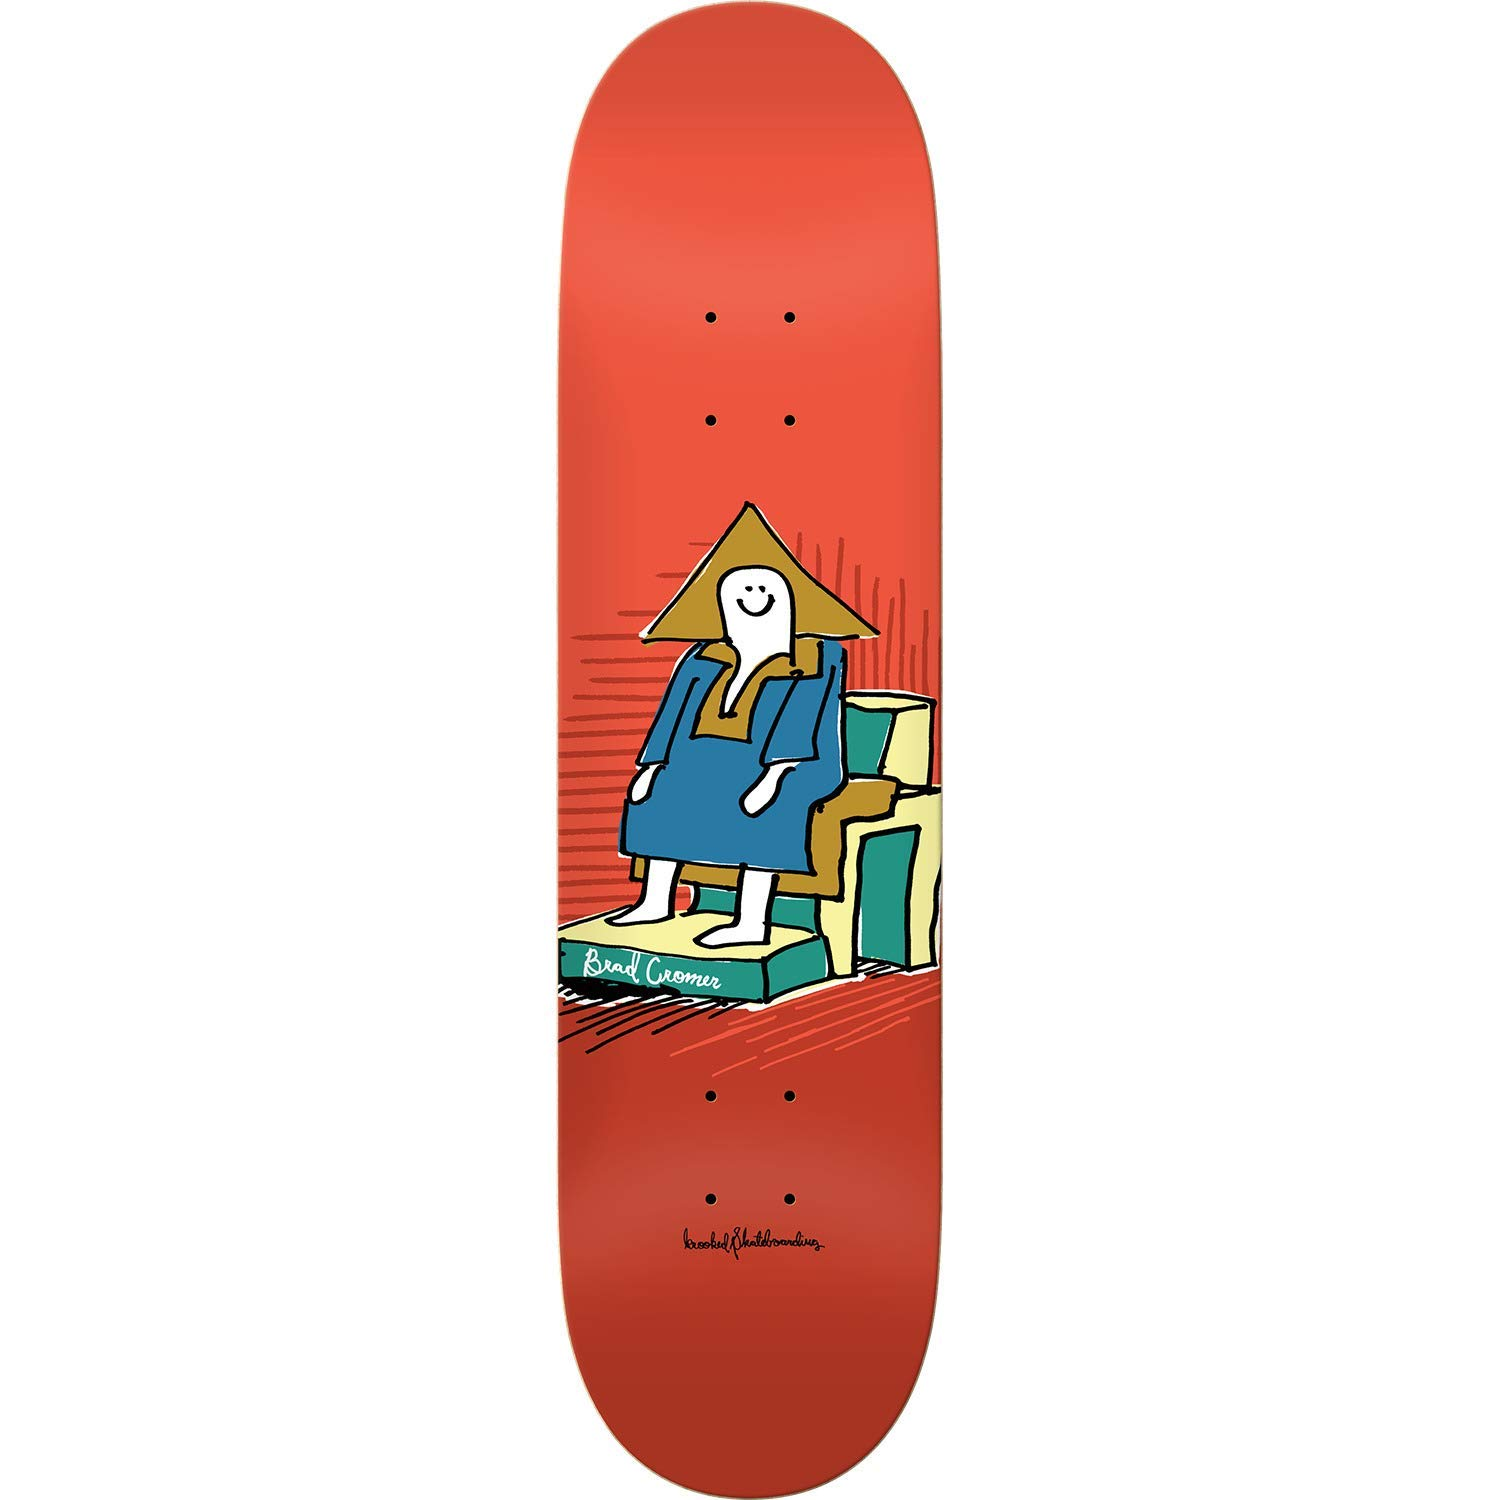 "Krooked Skateboards Brad Cromer Hi Chair Skateboard Deck - 8.06"" x 31.8"""